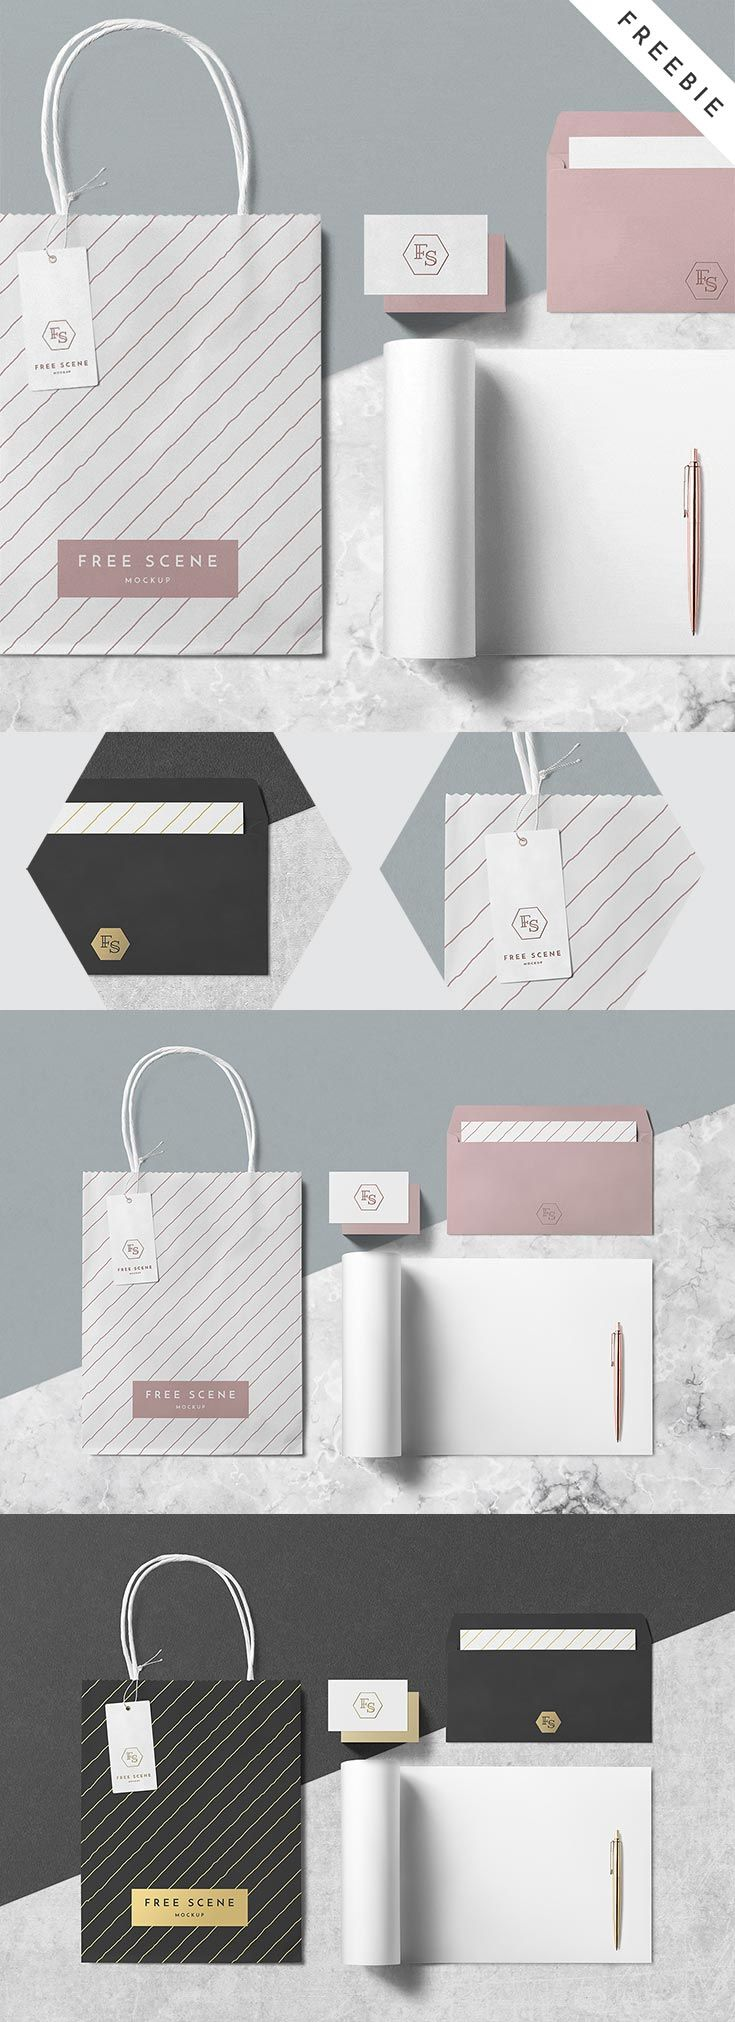 Free PSD Stationery Scene Mockup set contains business card, bag, tag, pen, sketchbook, and envelope. All neatly coming in 1 PSD file. via @creativetacos